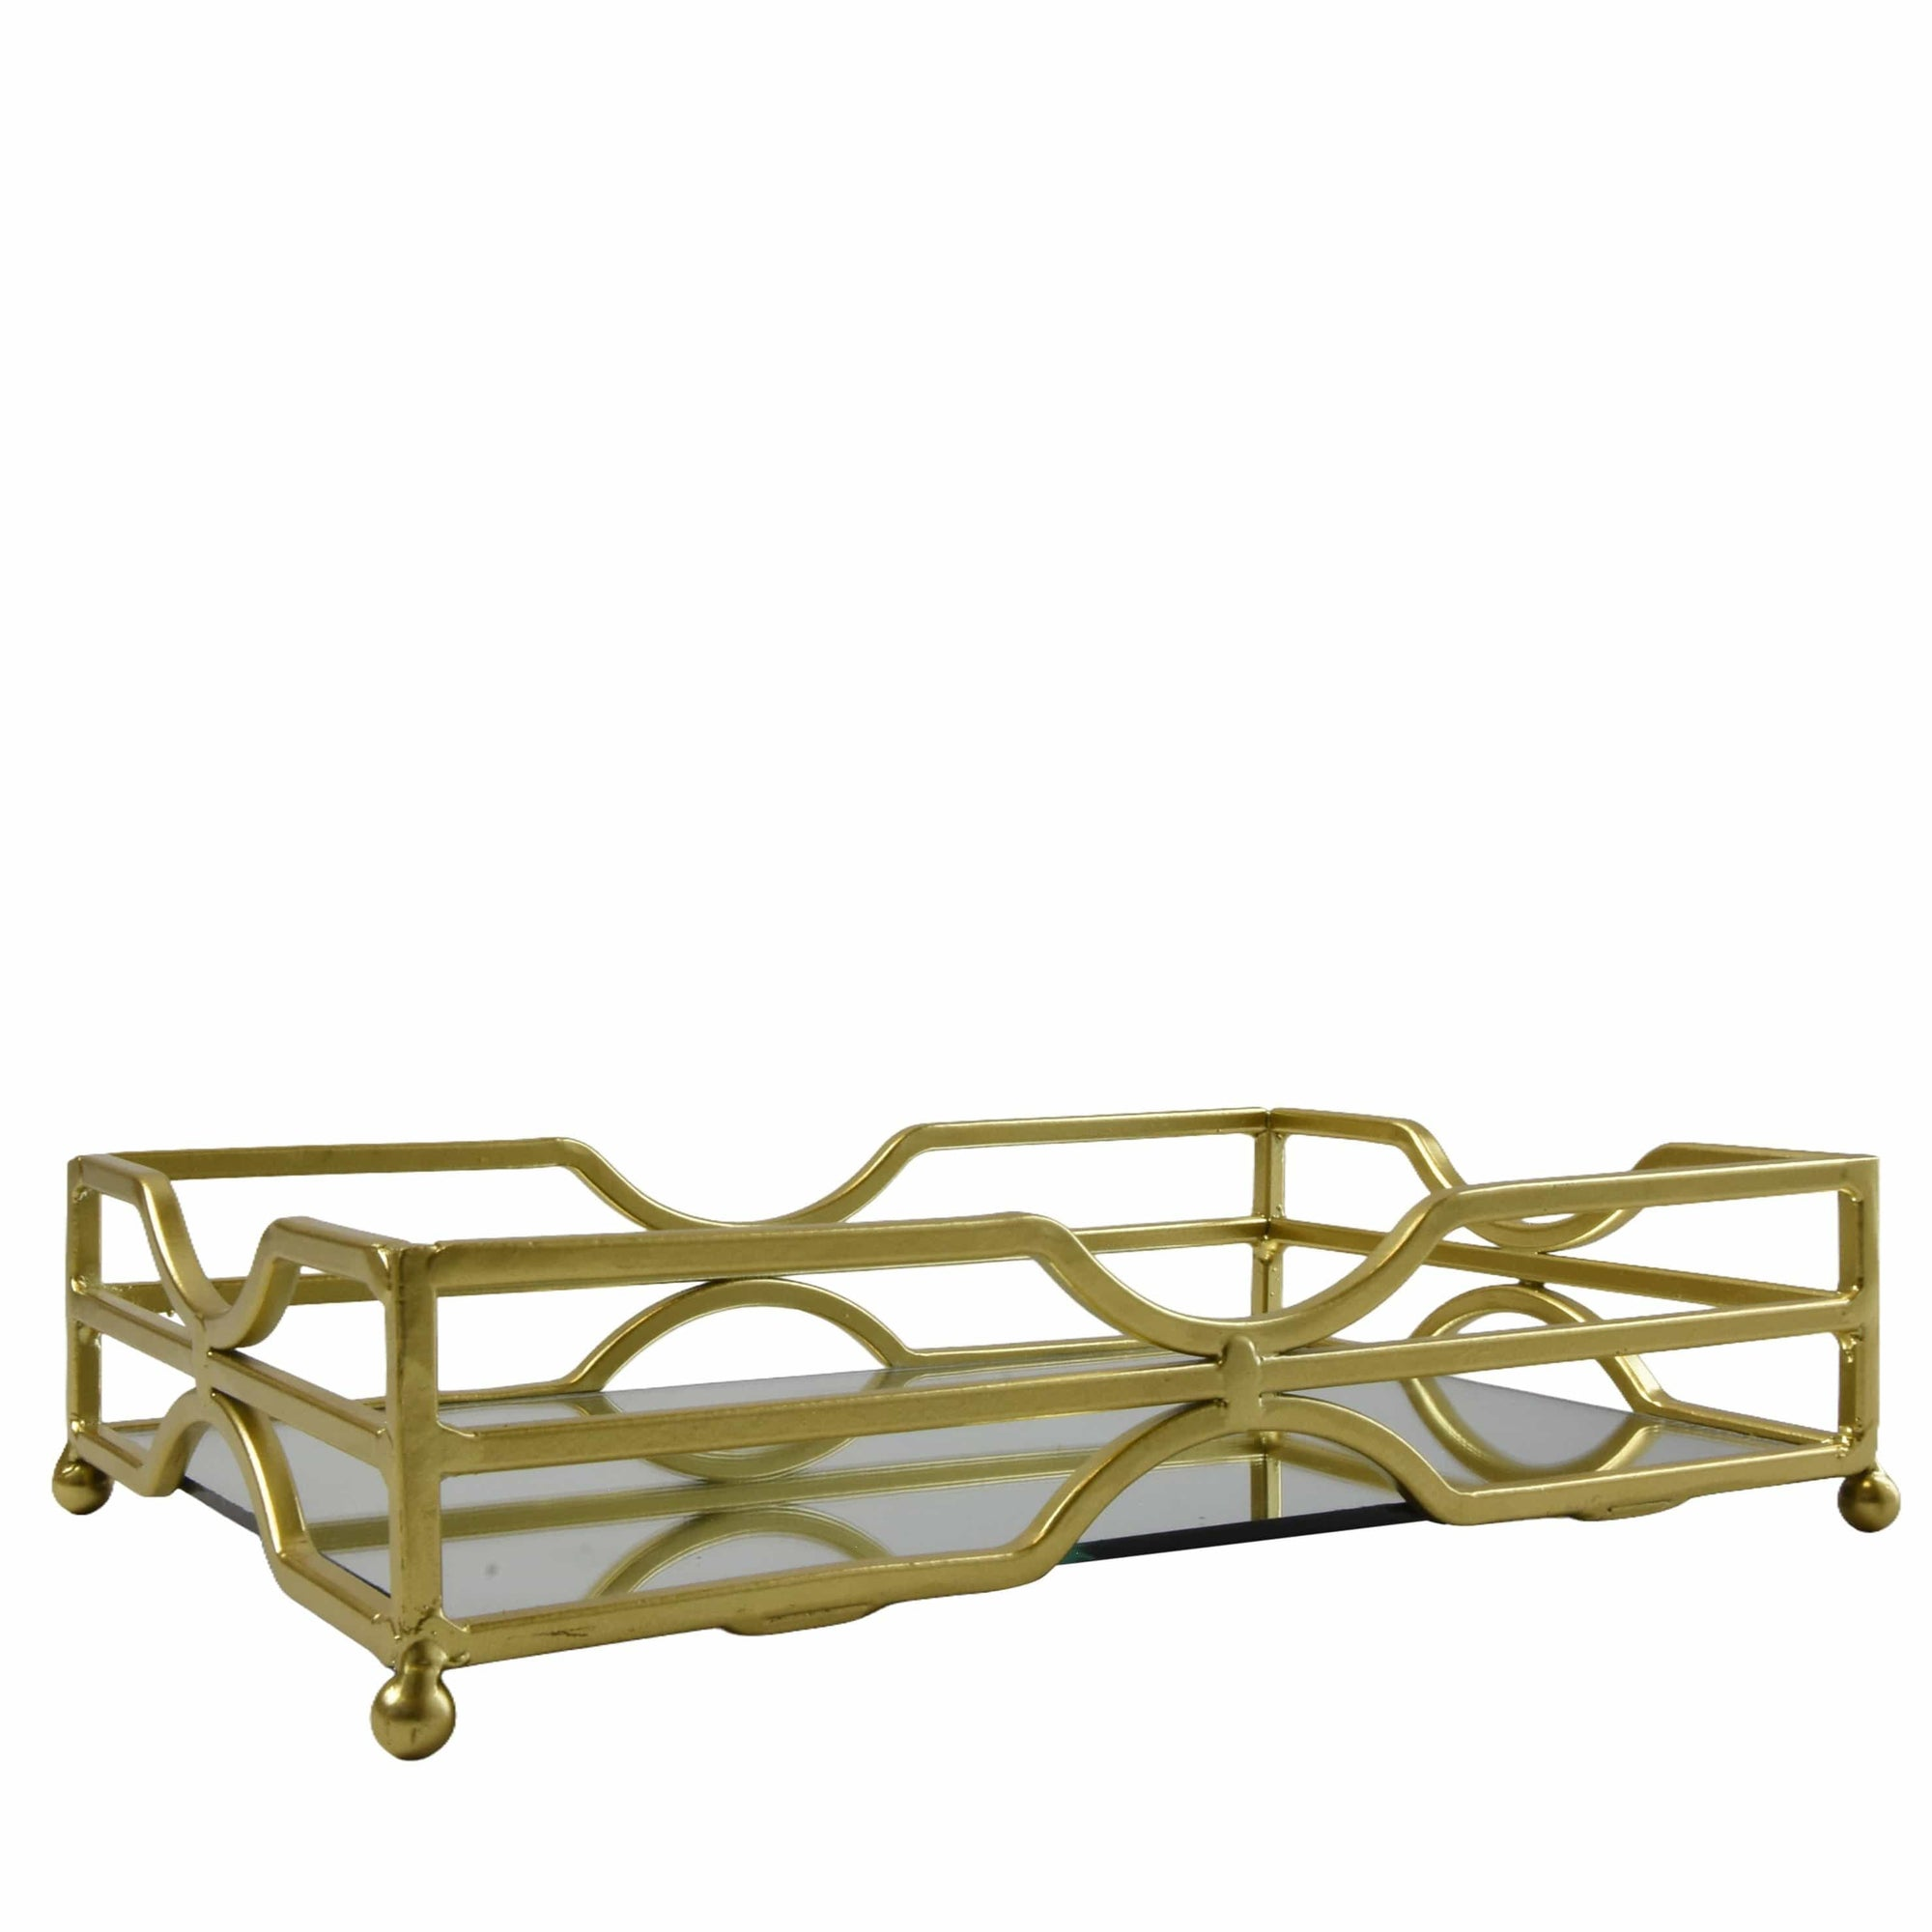 Gold Mirrored Tray Rectangular 24 cm